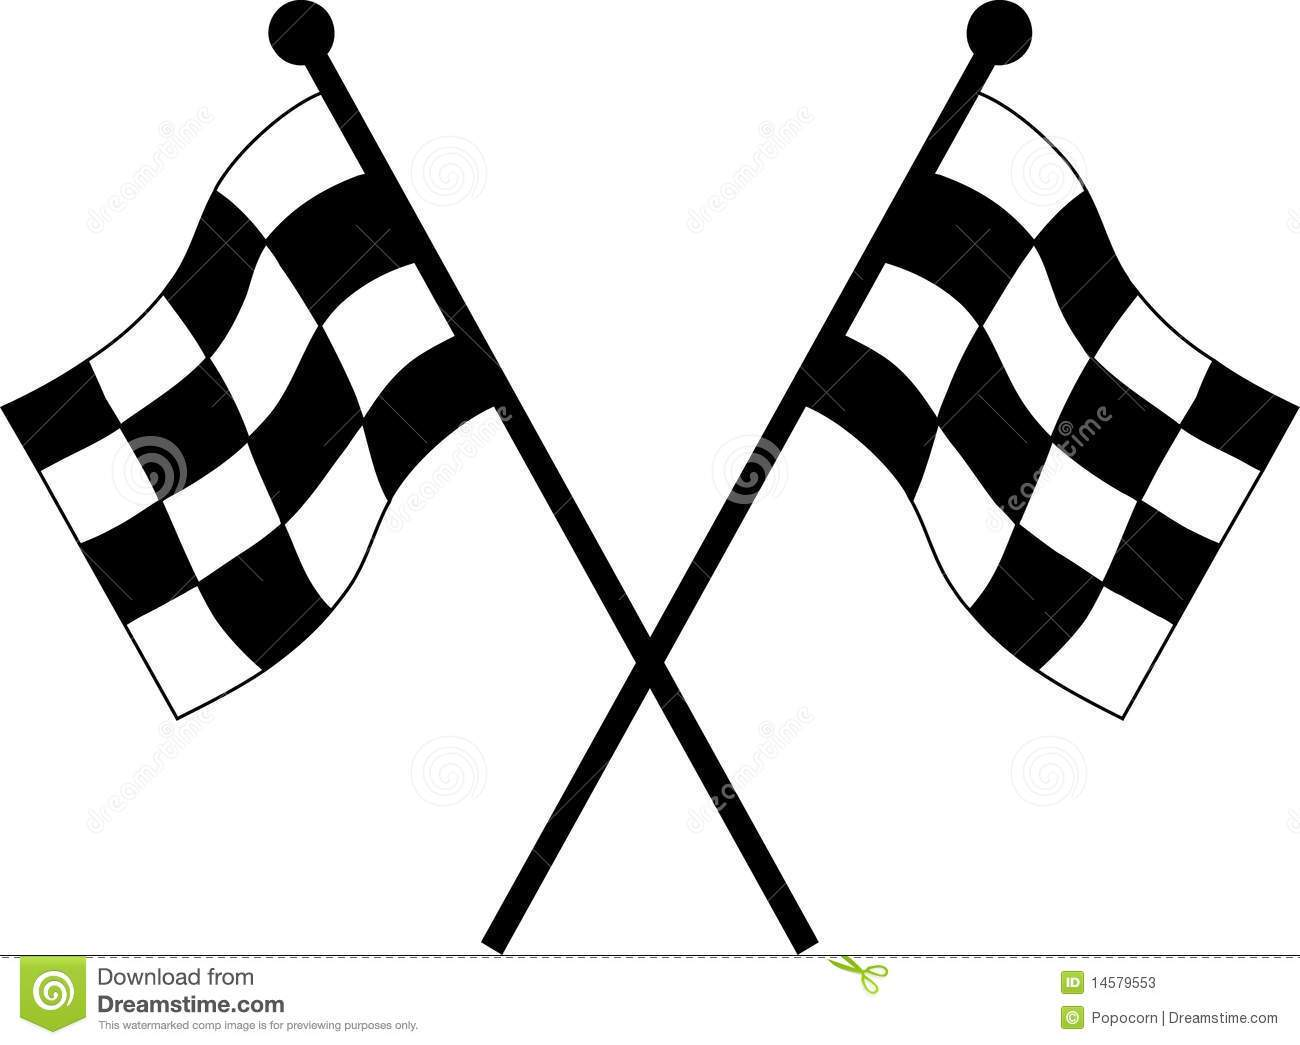 Racing clipart black and white png transparent library Racing clipart black and white » Clipart Portal png transparent library